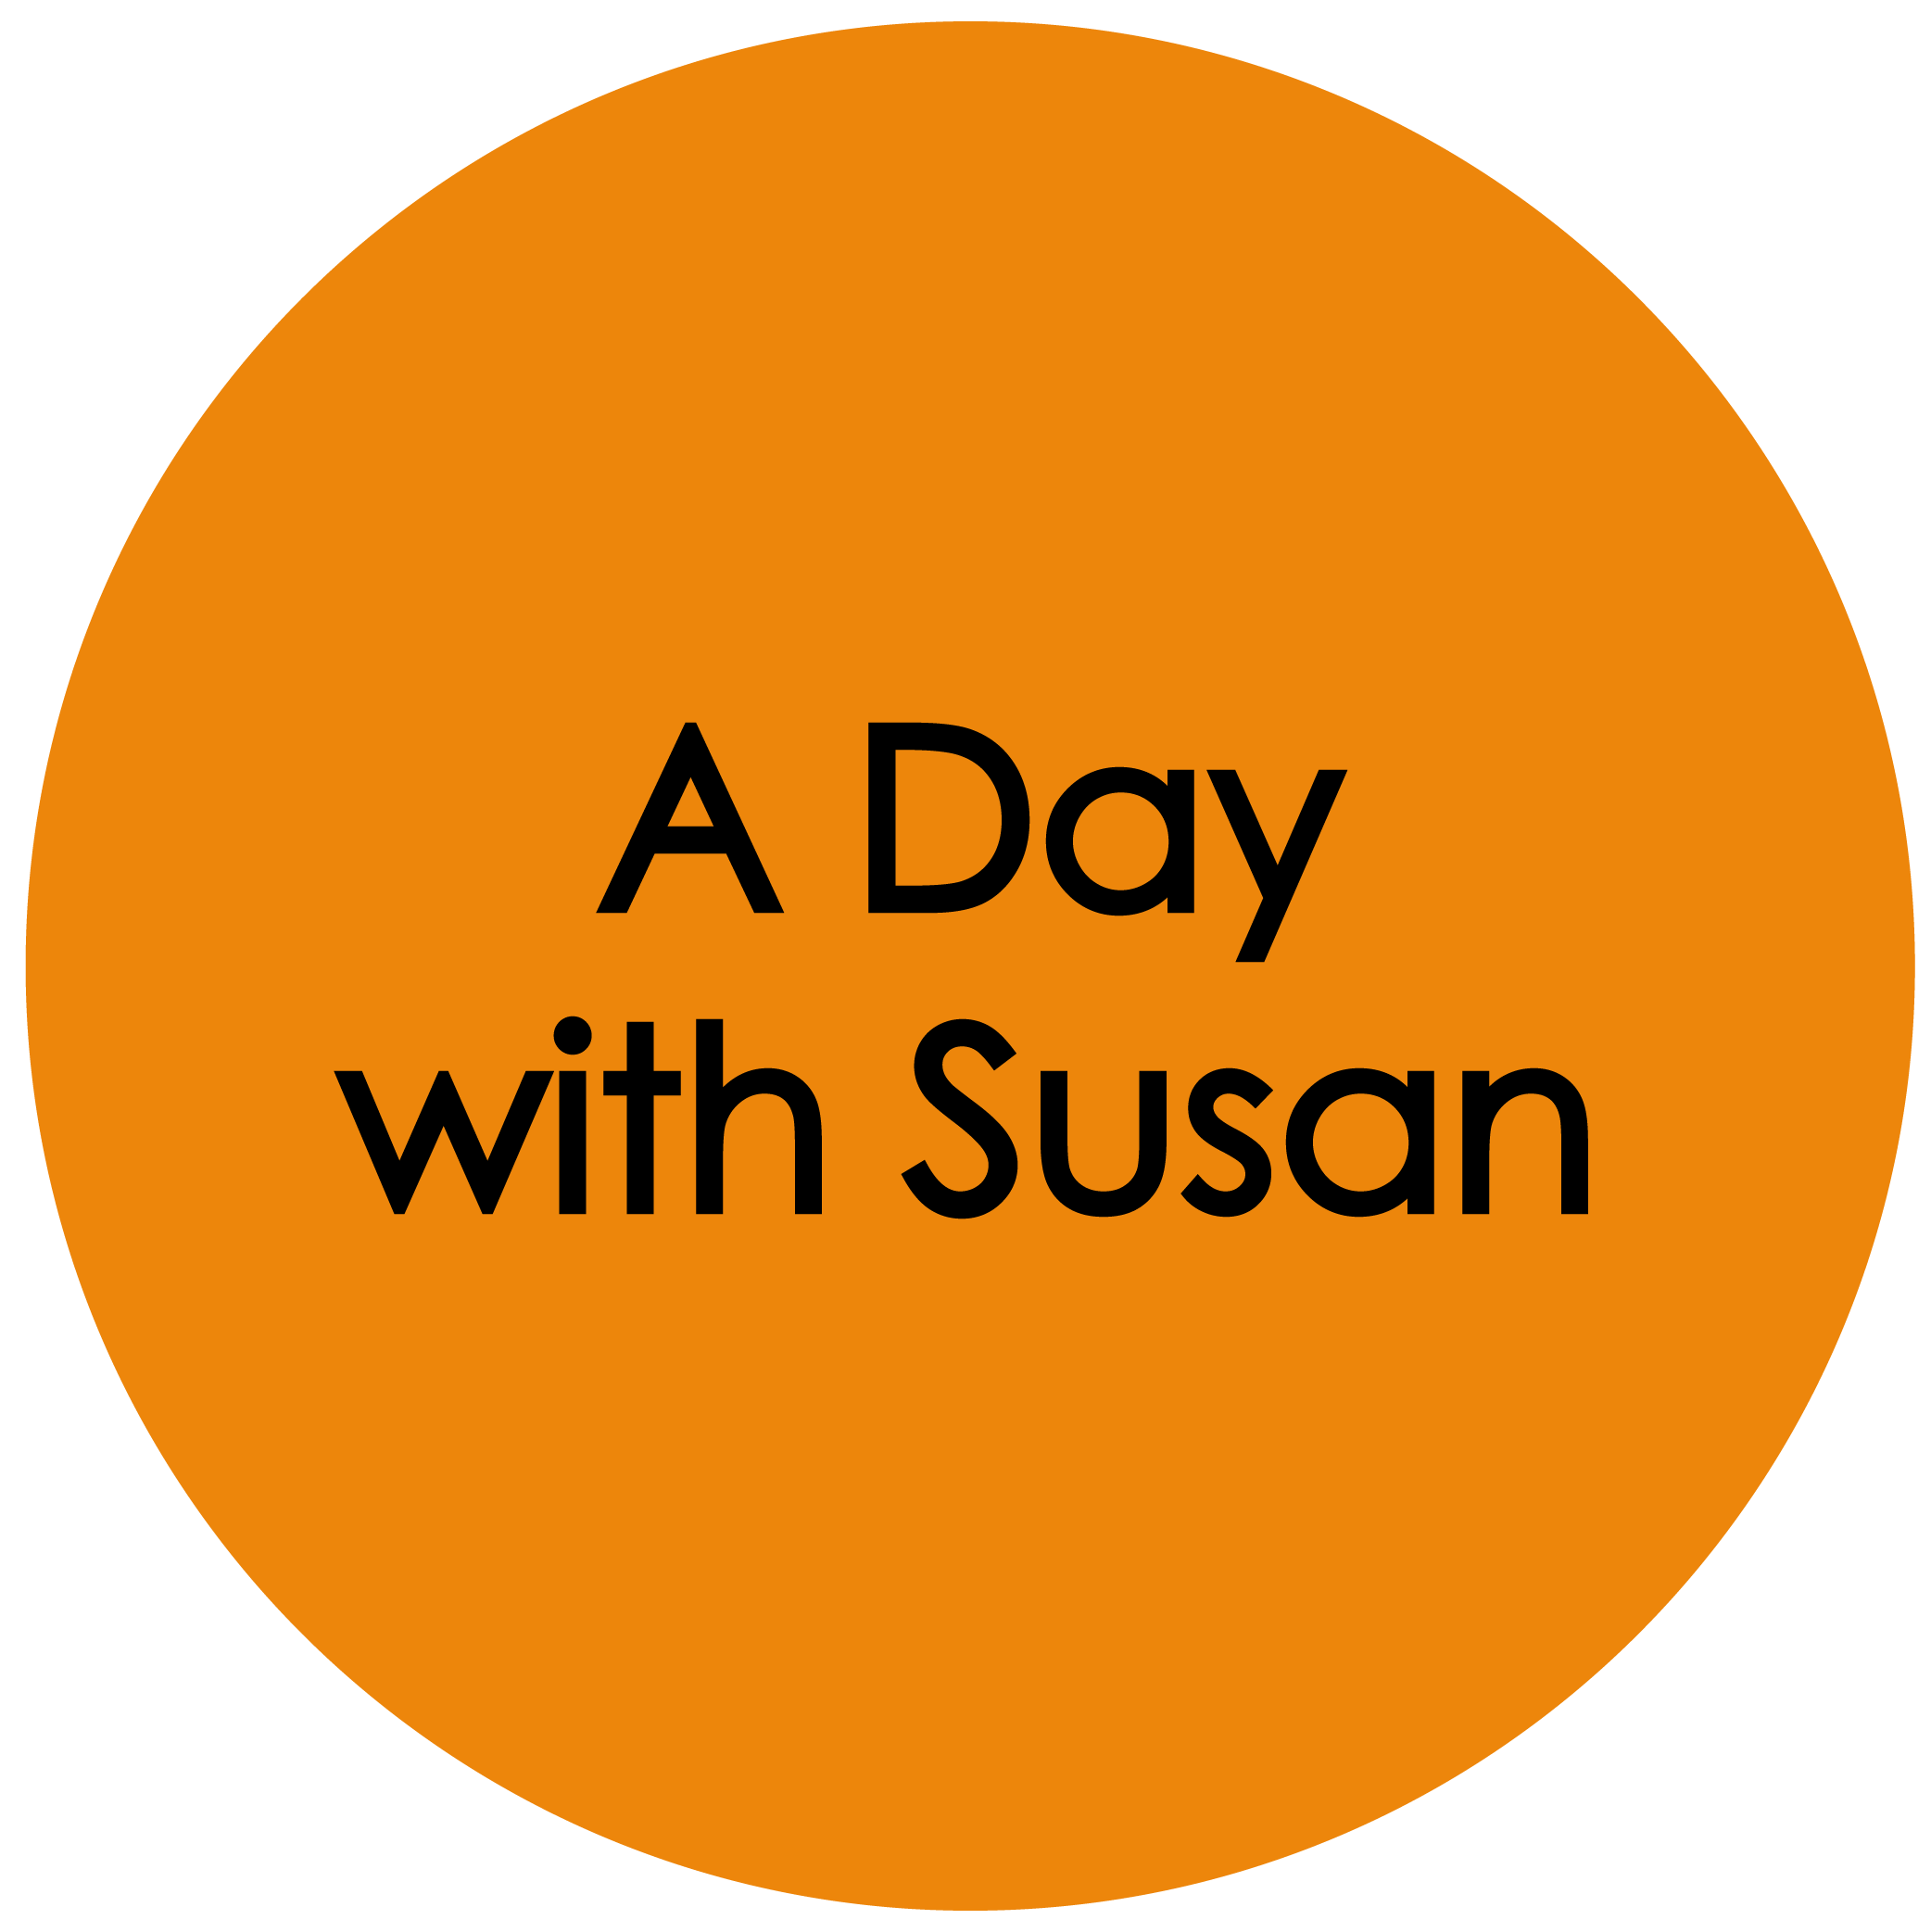 A day with susan button